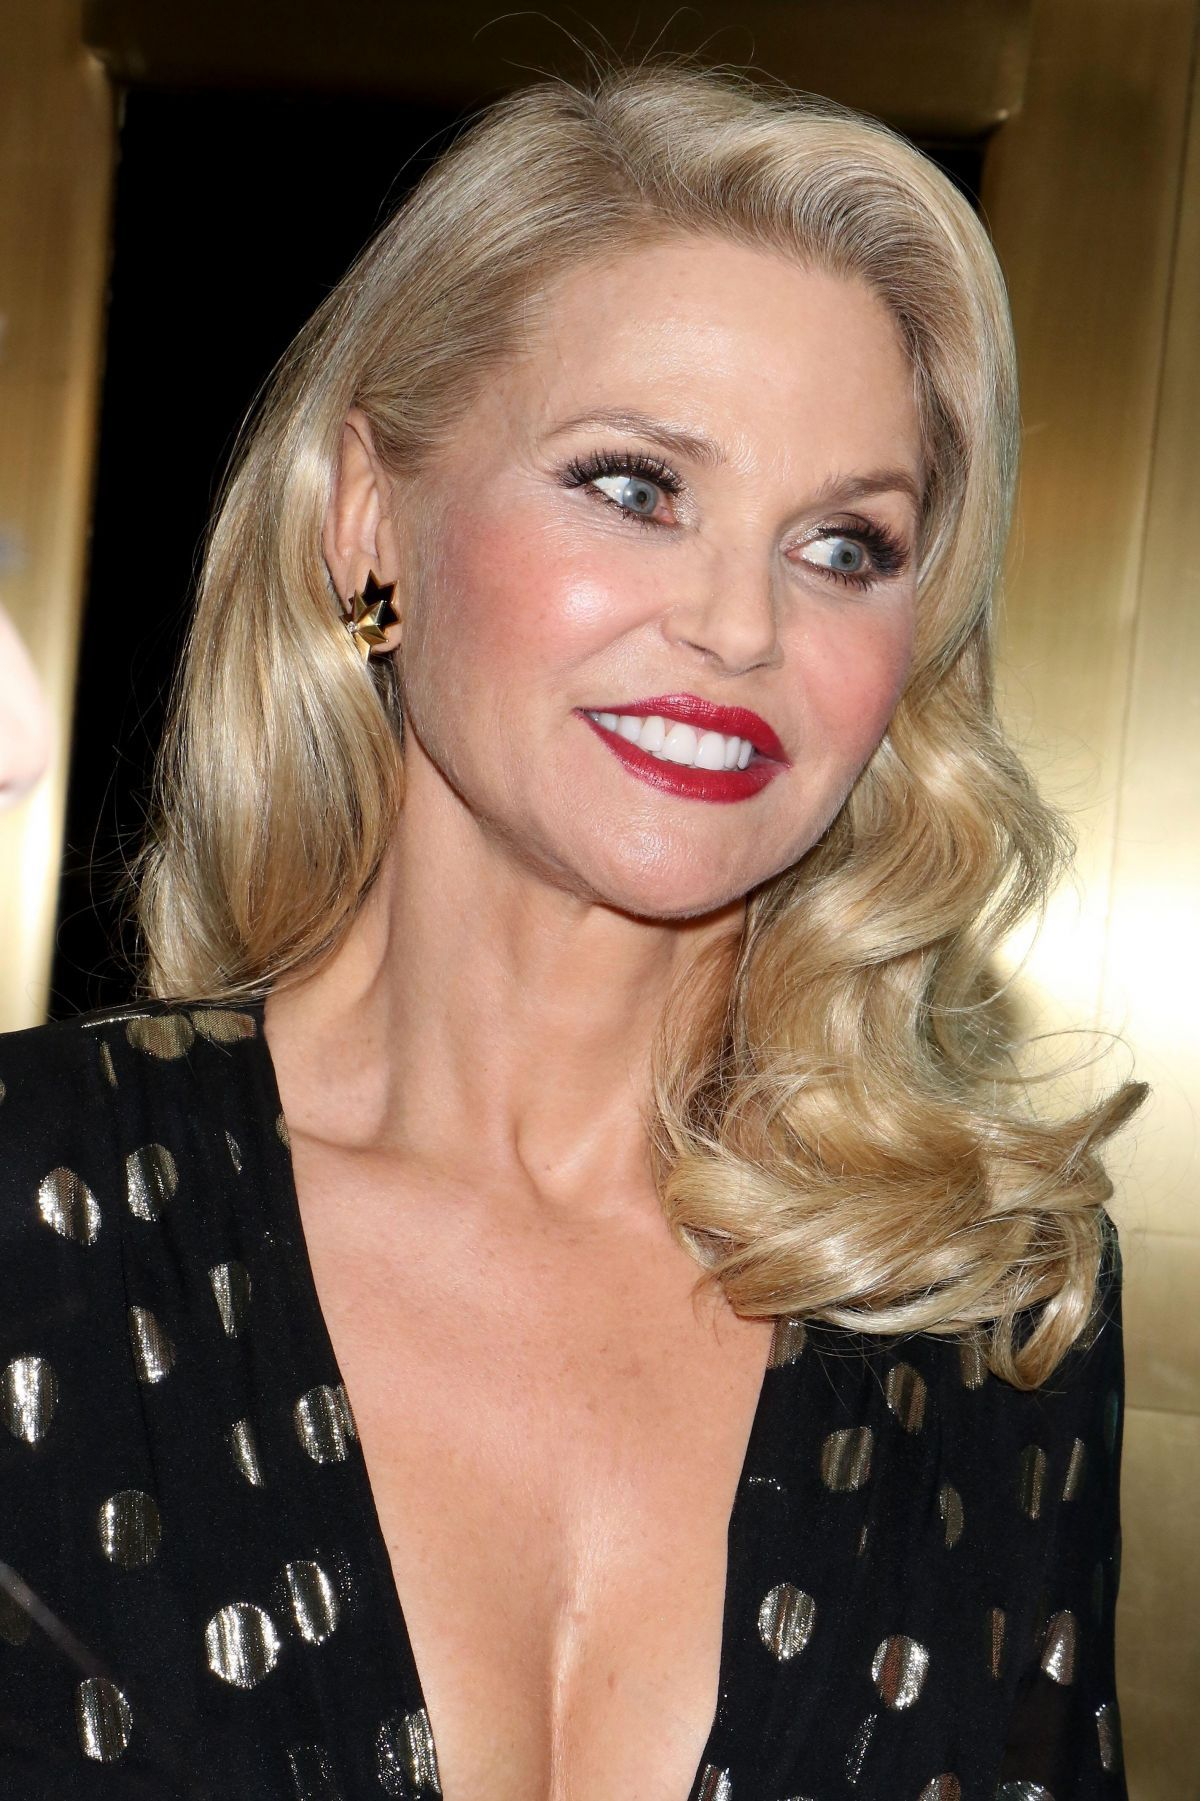 Christie Brinkley At 150 Years of Women, Fashion and New York Celebration in NY   christie-brinkley-at-150-years-of-women-fashion-and-new-york-celebration-in-ny_3